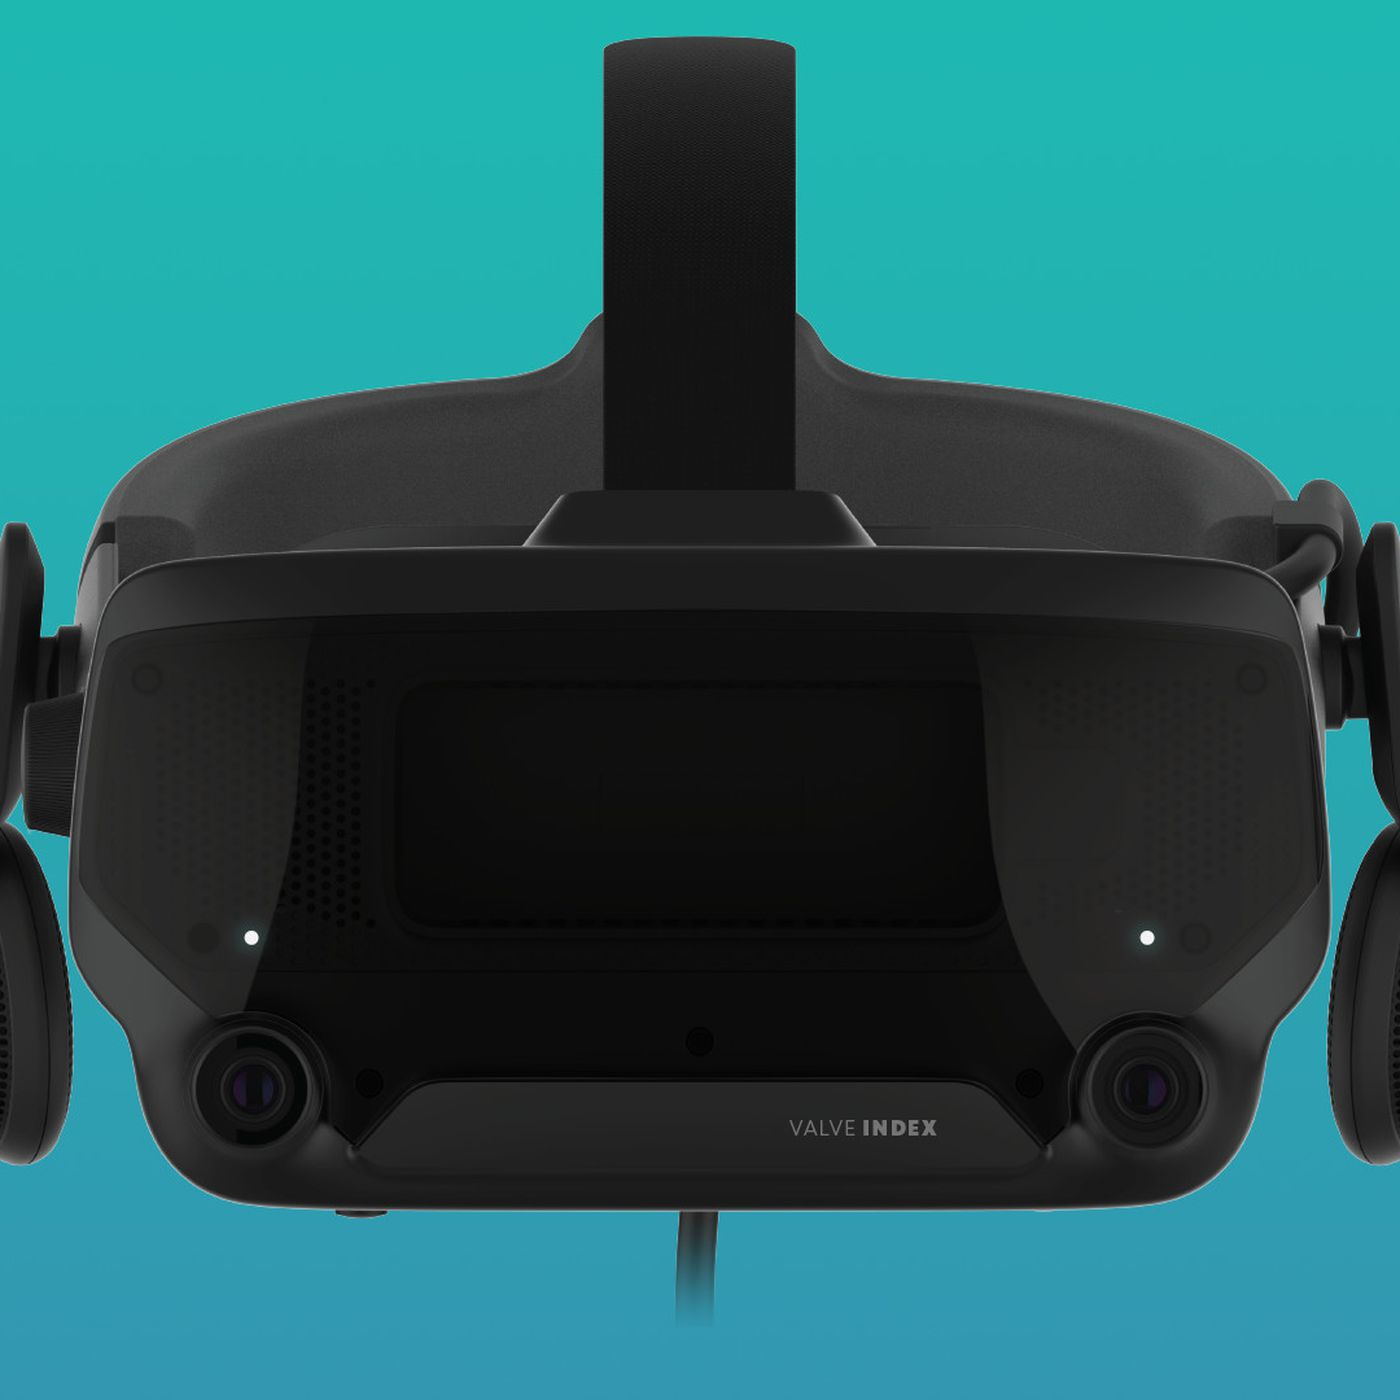 Valve's Index VR headset will ship this June, with preorders